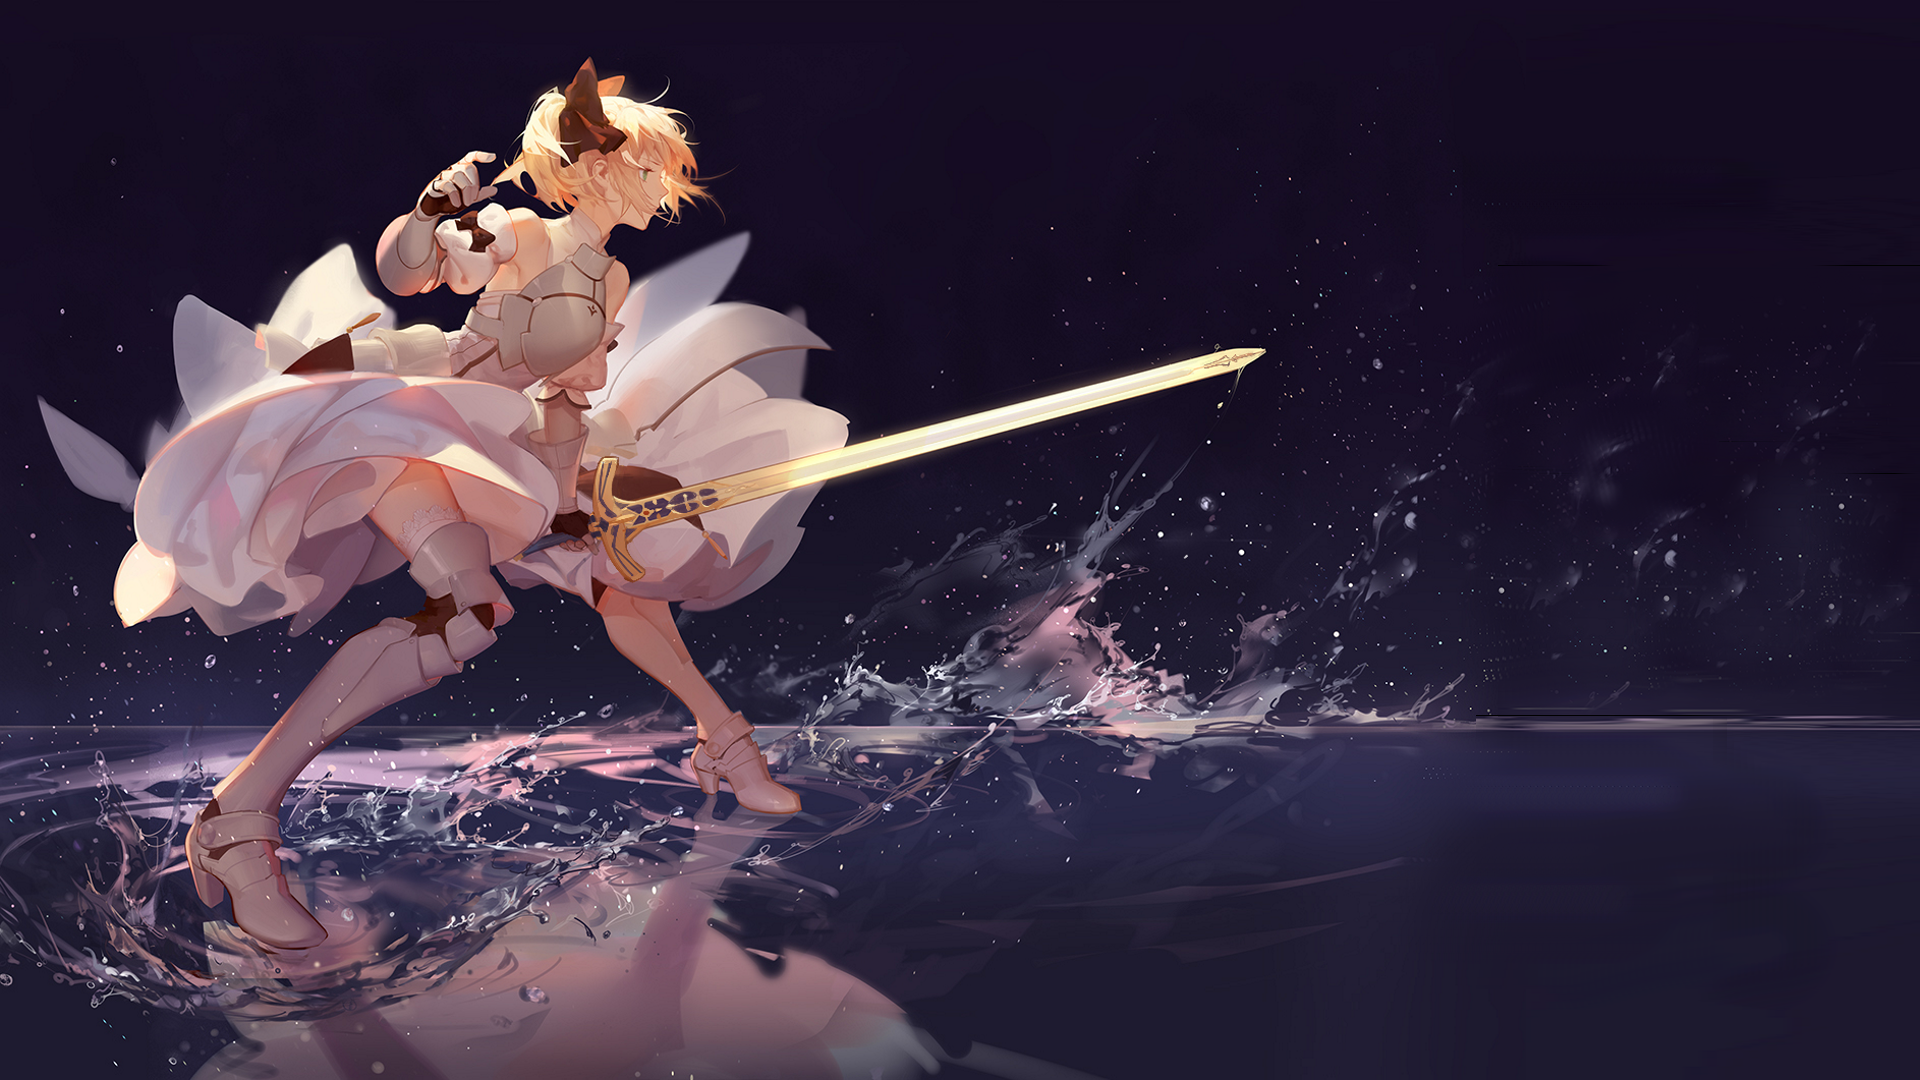 Saber Lily Hd Wallpaper Background Image 1920x1080 Id